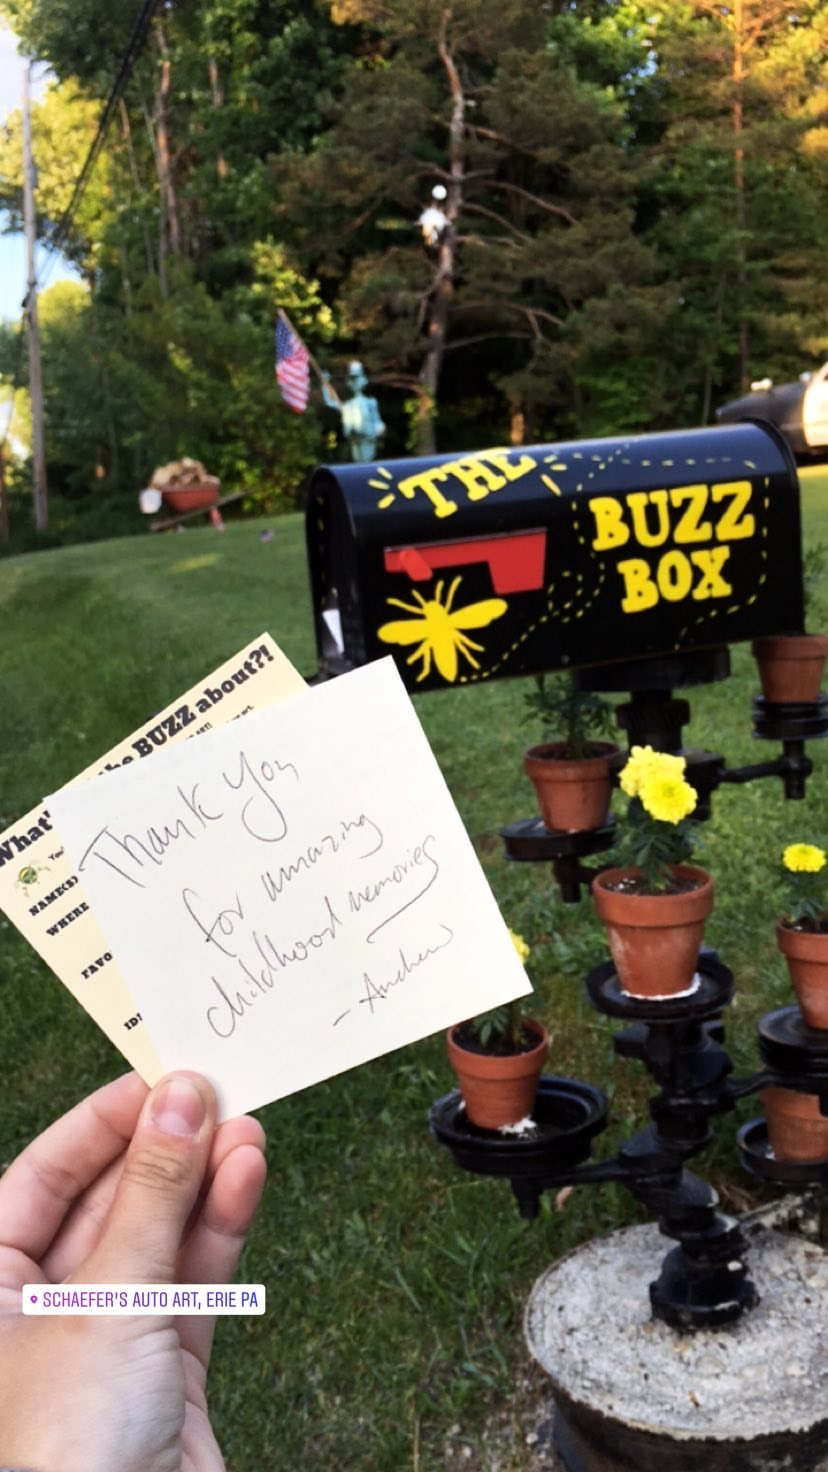 Buzz Card The Buzz Box at Schaefer's Auto Art.JPG